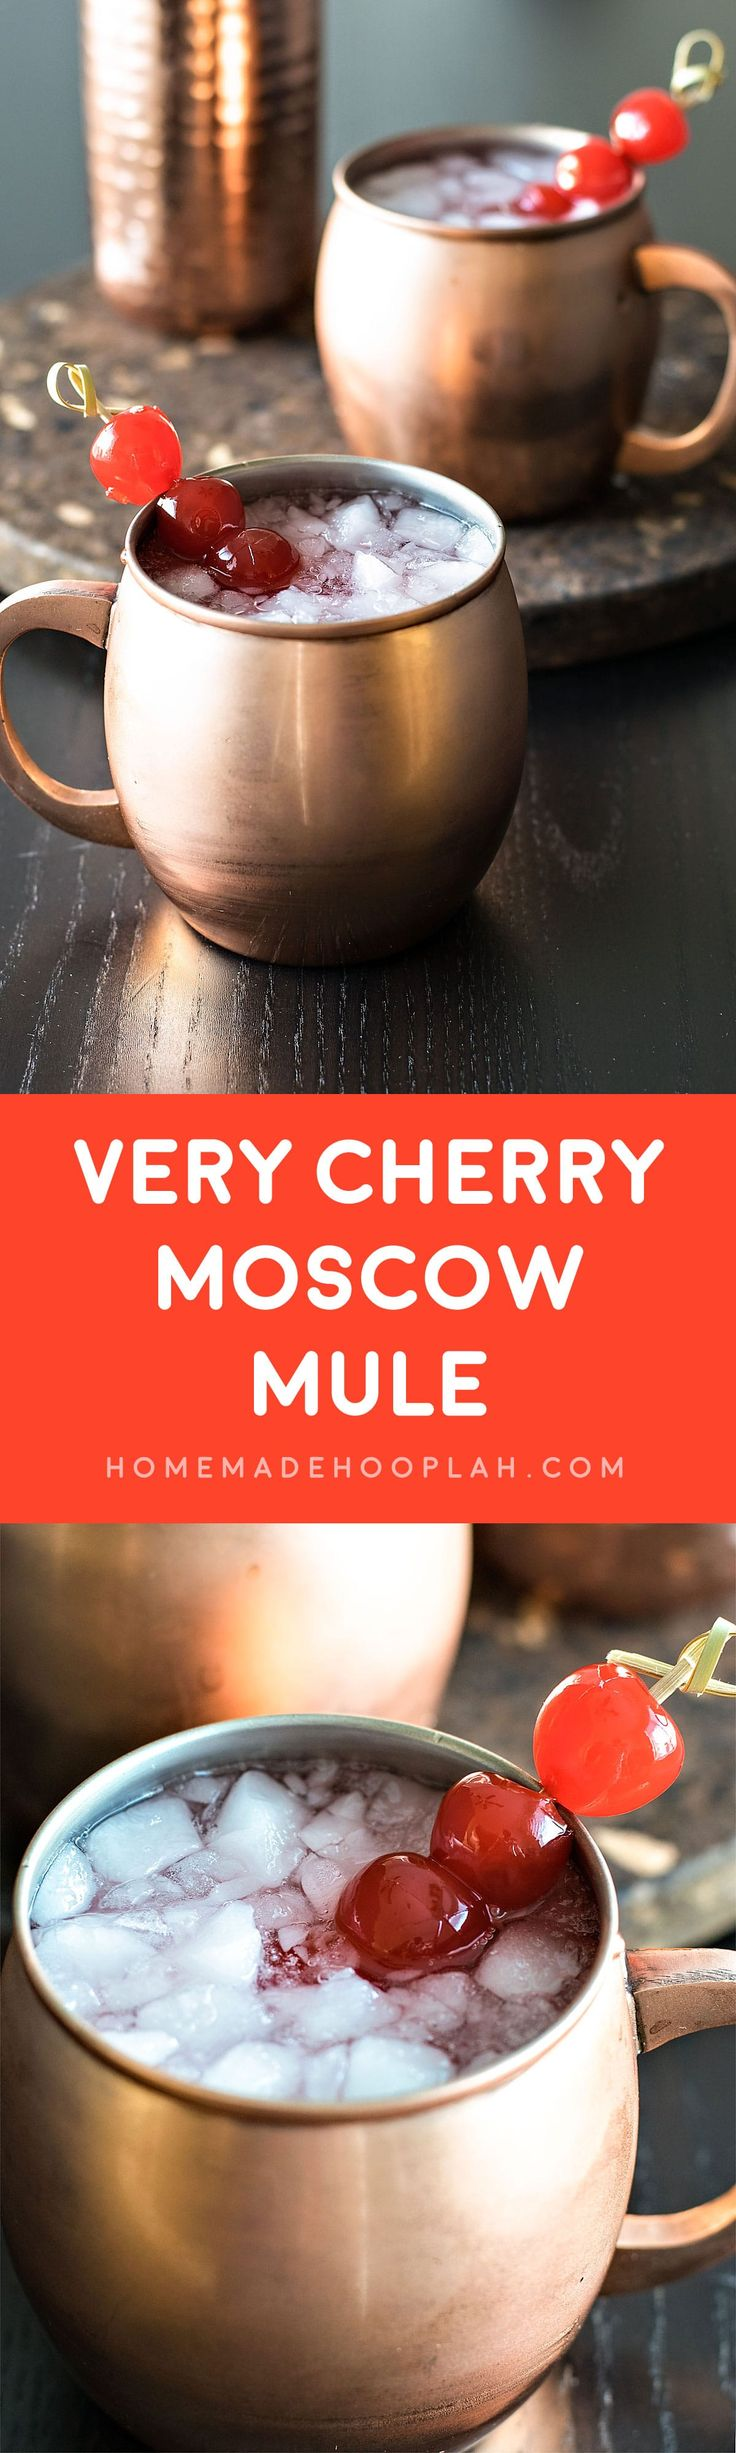 Very Cherry Moscow Mule! 1 tbsp lime juice. 1 oz cherry vodka * 4 oz ginger beer * (such a Q Ginger Beer), 1 tsp maraschino cherry juice plus more to taste.